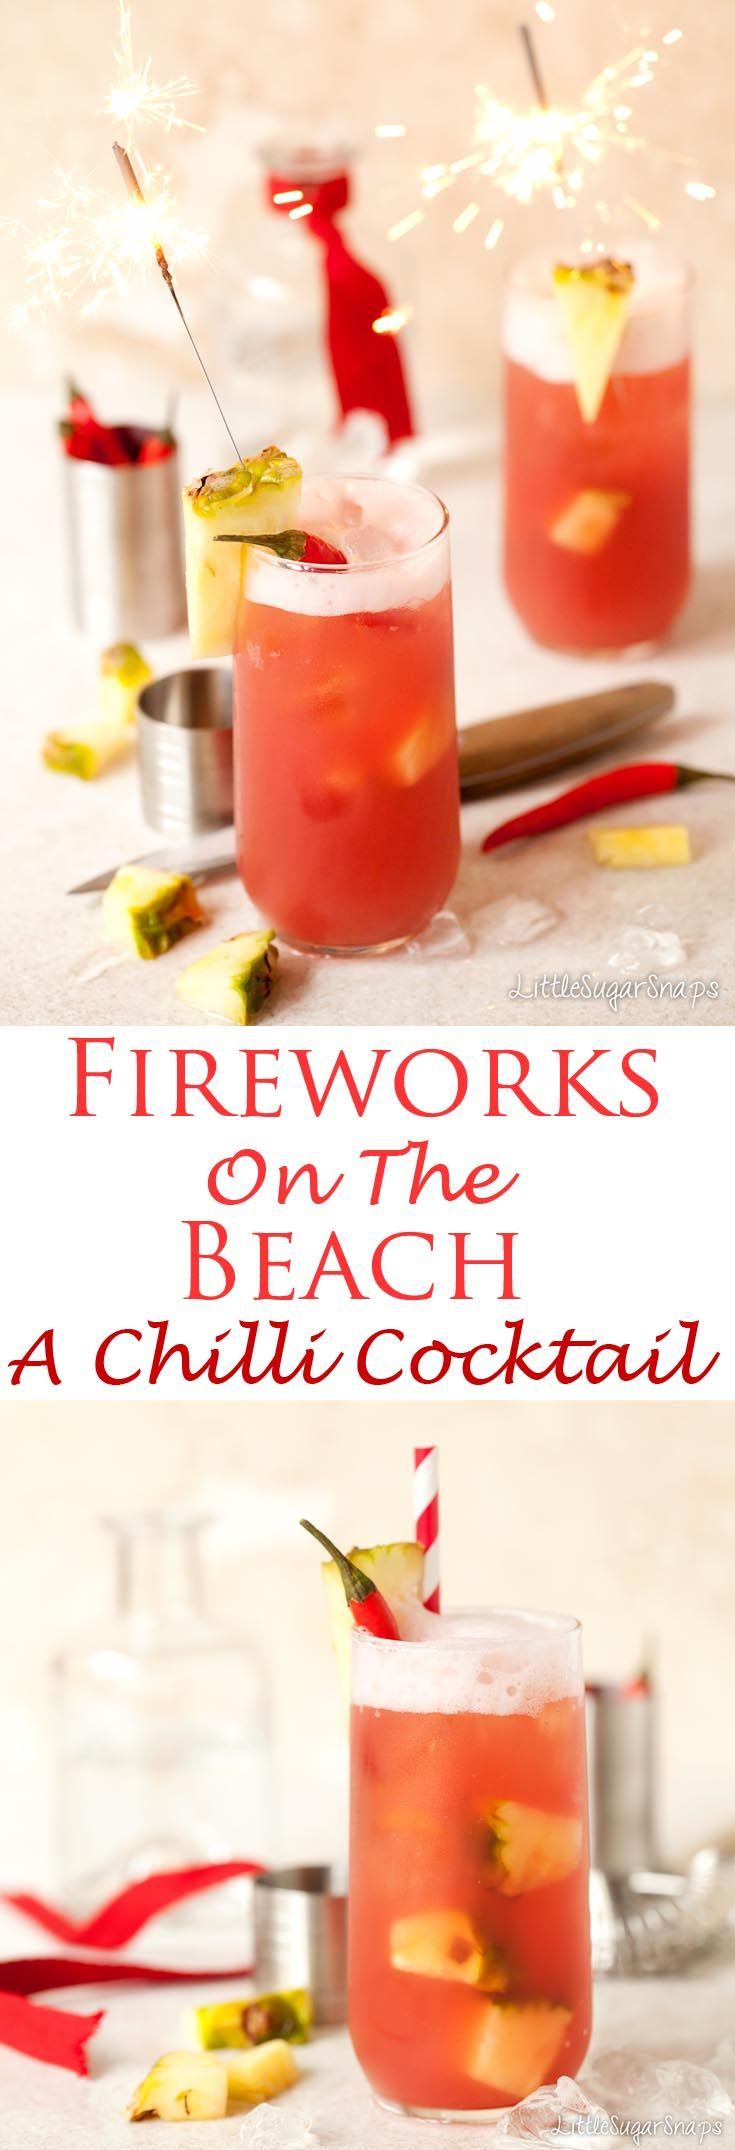 Fireworks on the Beach is a fiery twist on the classic Sex on the Beach cocktail. At the heart of this cocktail lies Chilli Vodka, making it a spicy, fruity, long and punchy drink to savour.